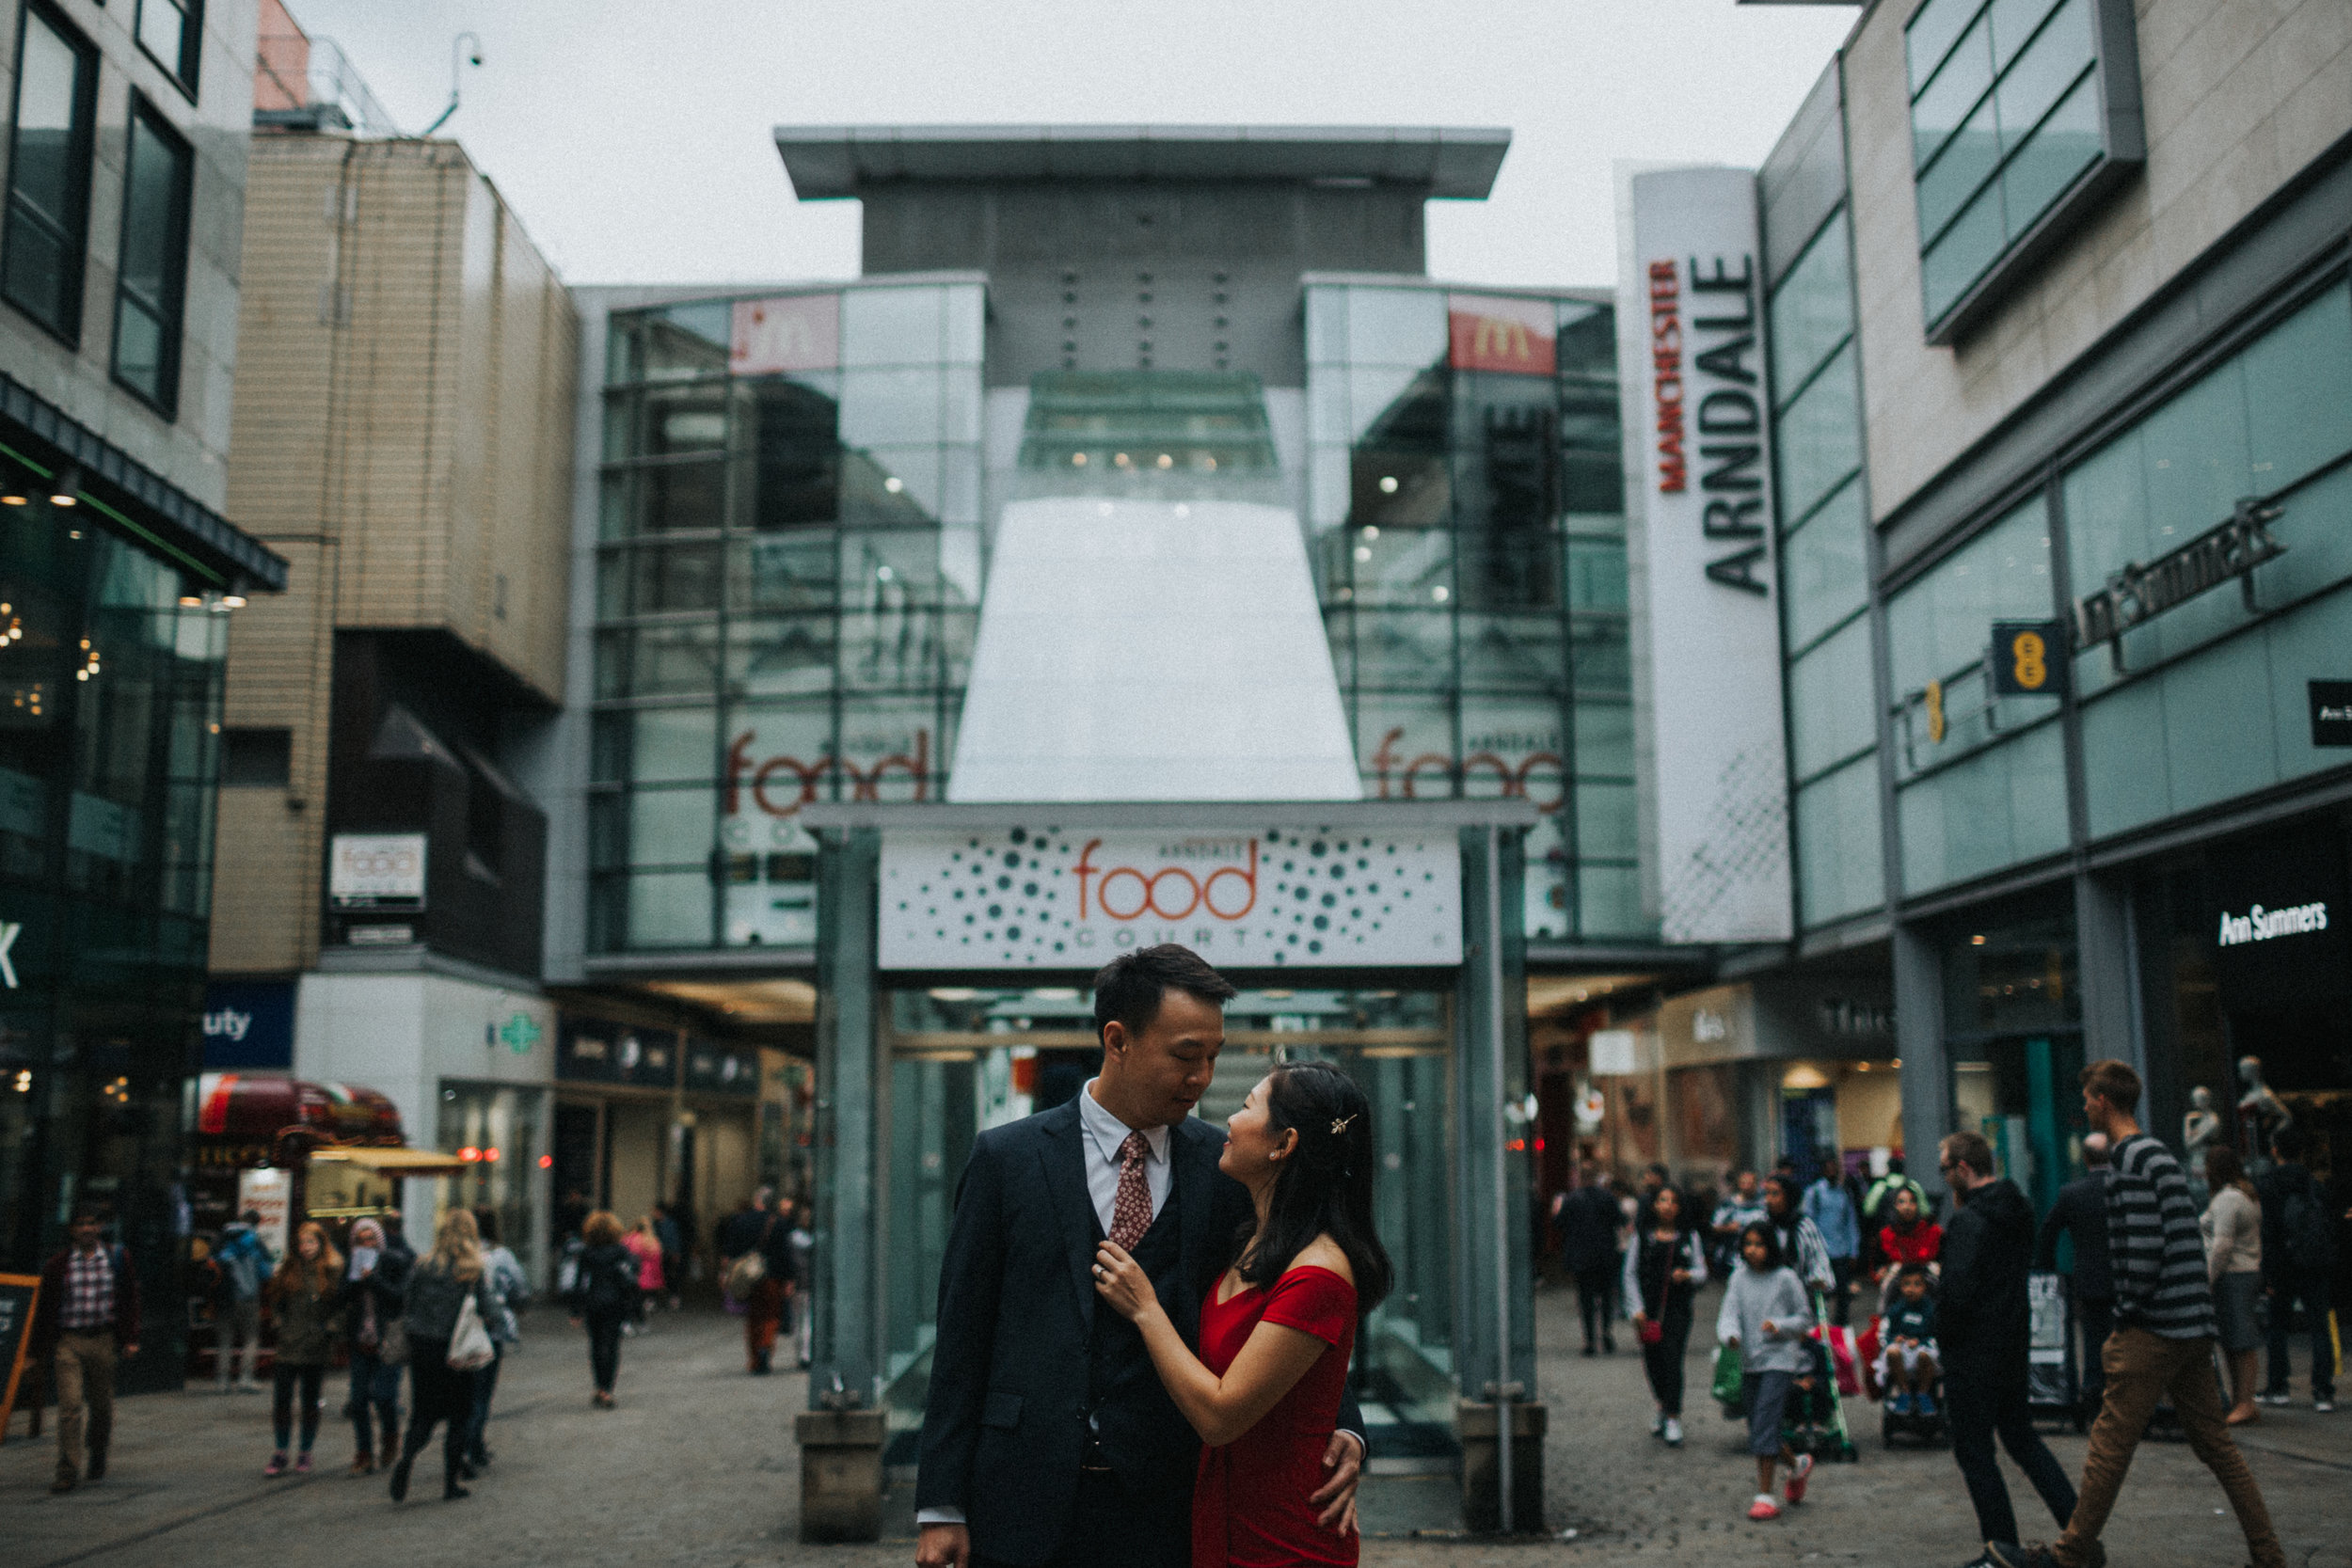 Couple embrace outside Market Street Food Court.